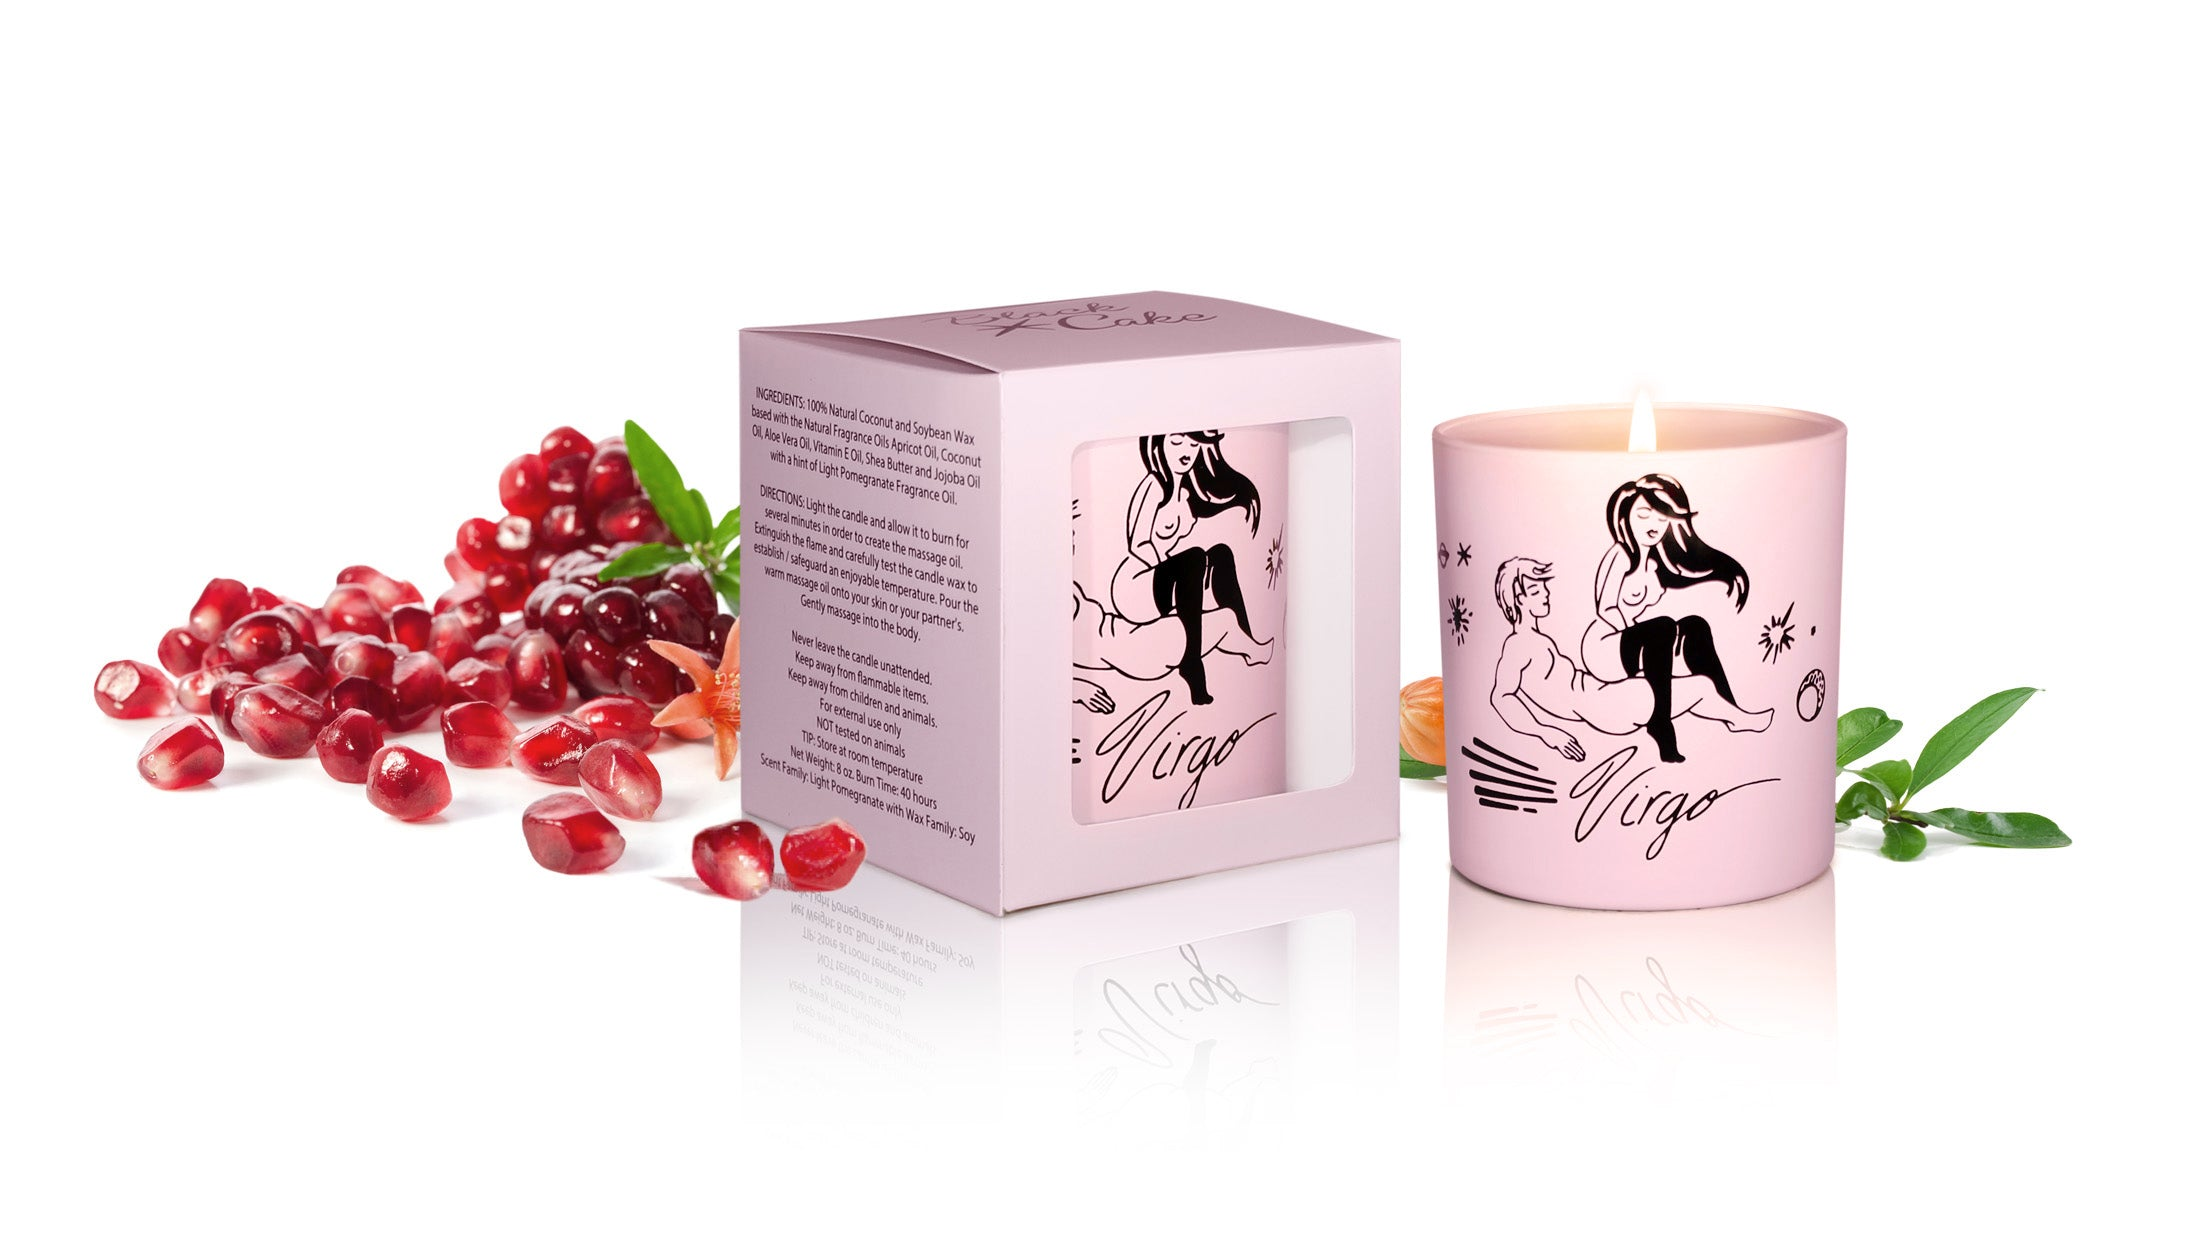 Zodiac Massage Candle Virgo, Pomegranate Fragrance